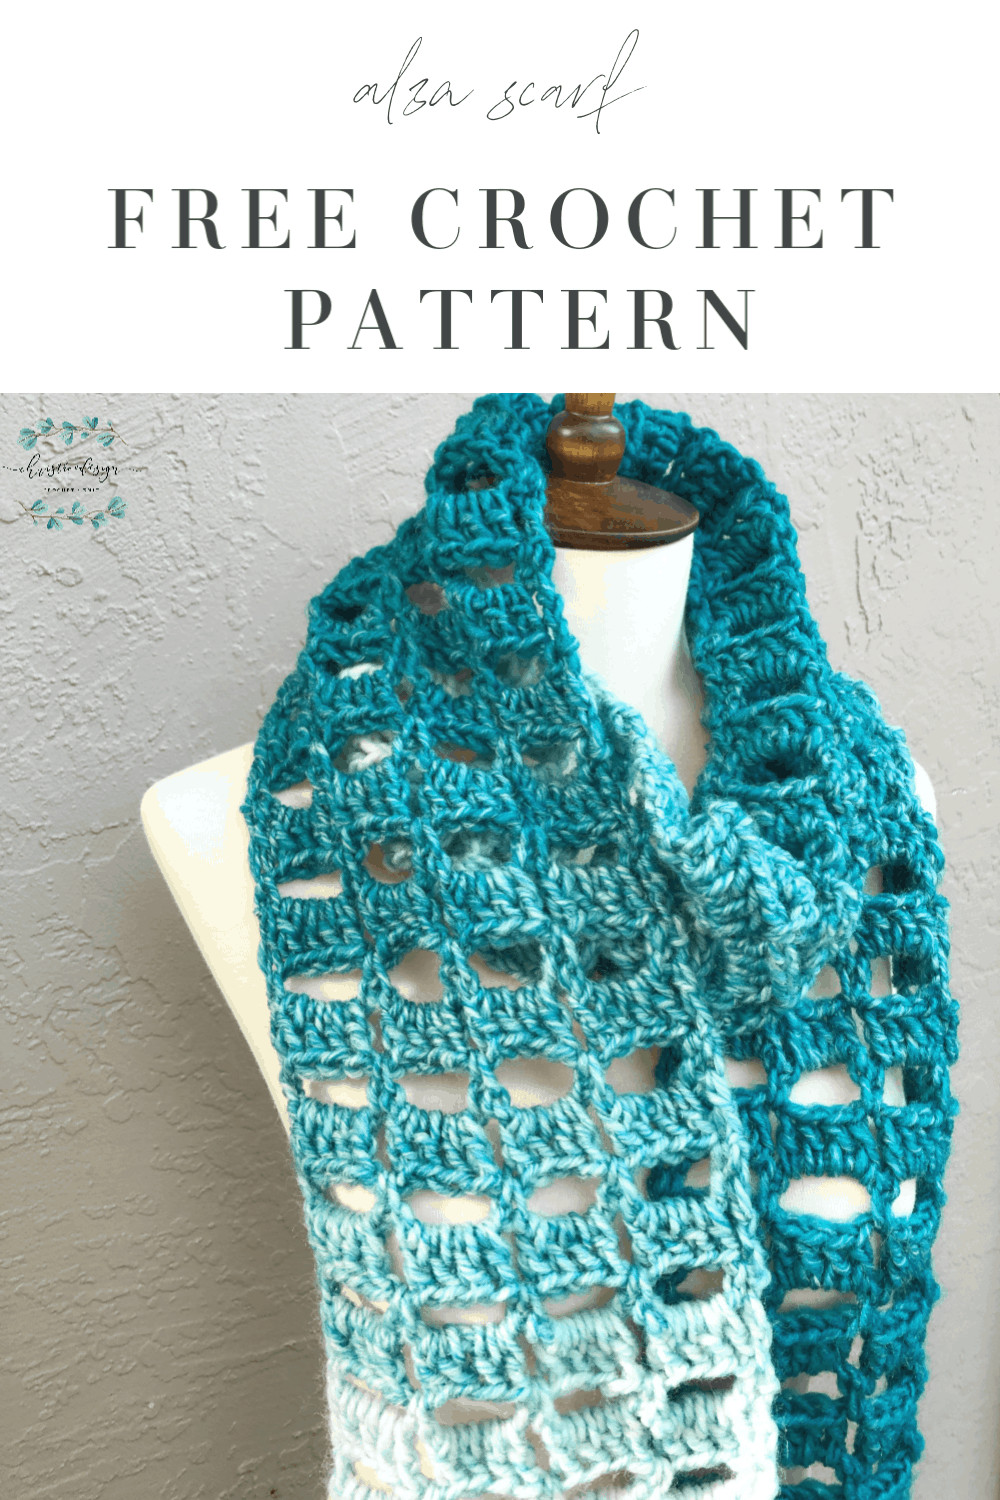 Alza Scarf Free Crochet Pattern an easy crochet scarf in teal blocks this free pattern works up in one skein of Scarfie yarn.